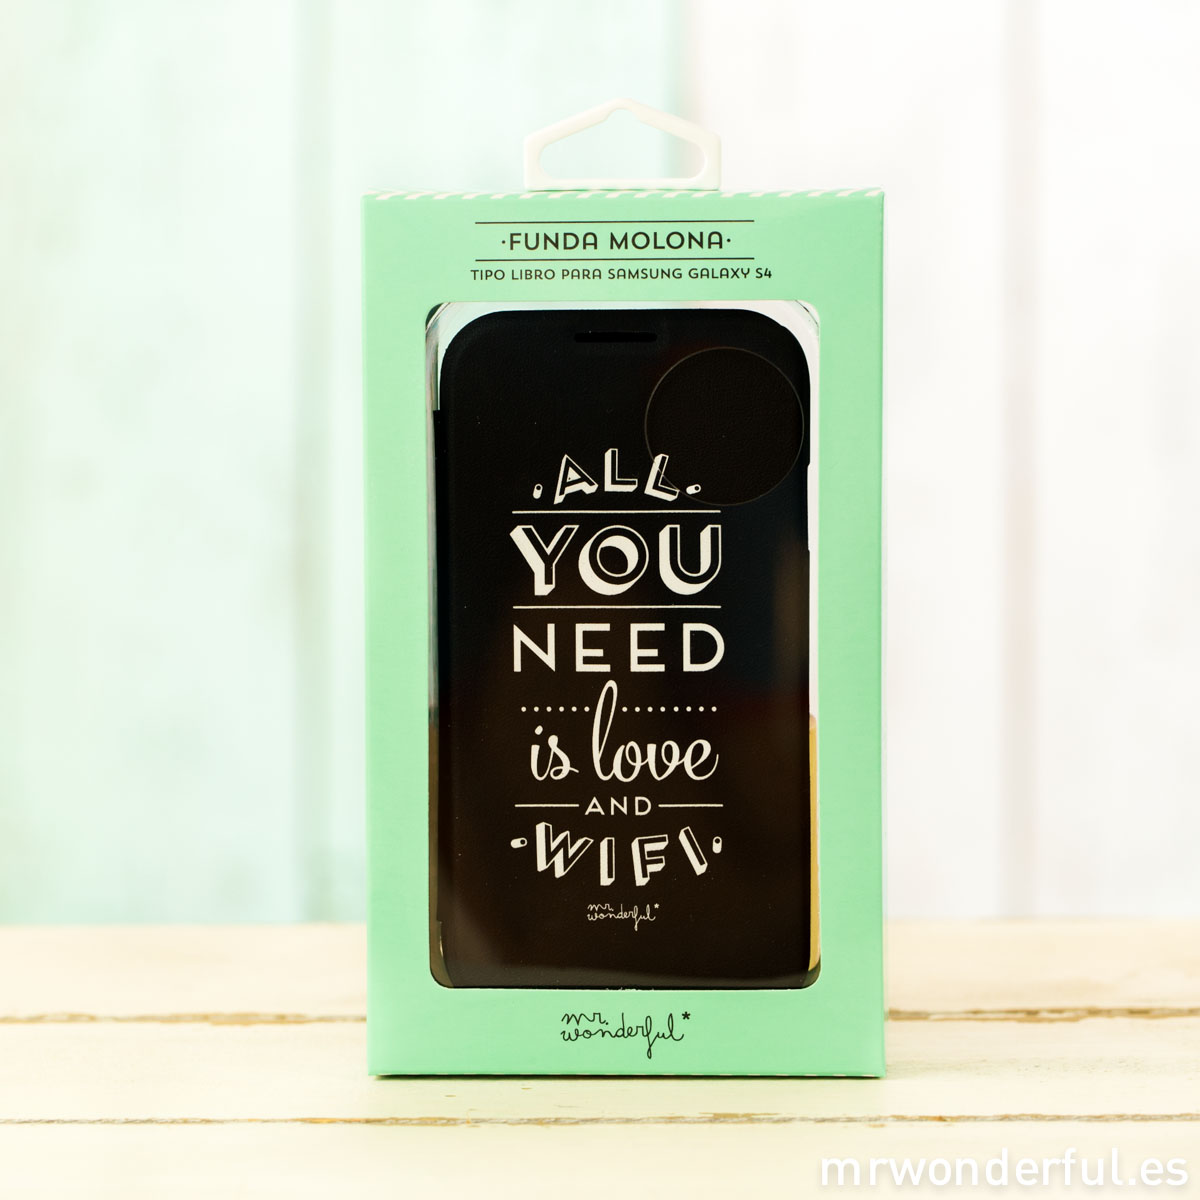 mrwonderful_MRFOL001_funda-negra-samsung-galaxy-S4_all-you-need-love-wifi-1